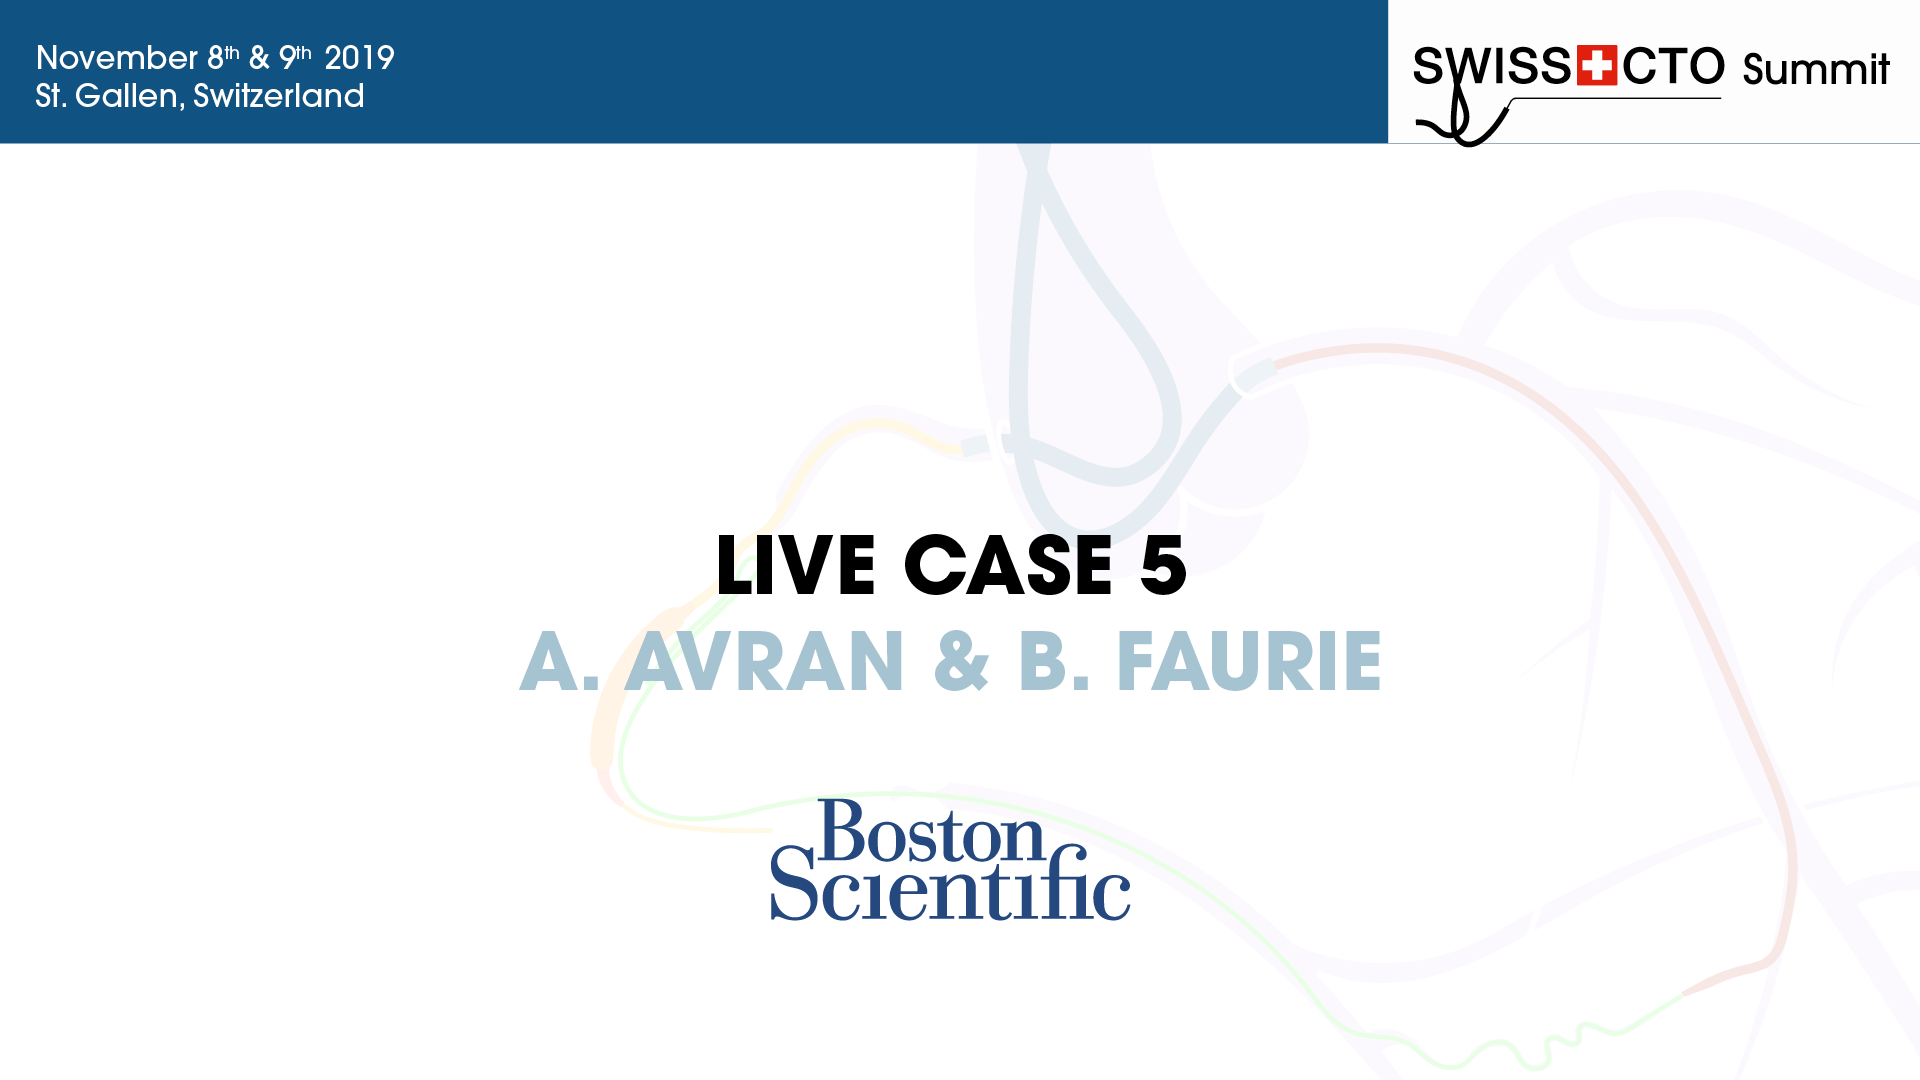 Live case from Swiss CTO Summit 2019 - Dr Avran & Dr Faurie